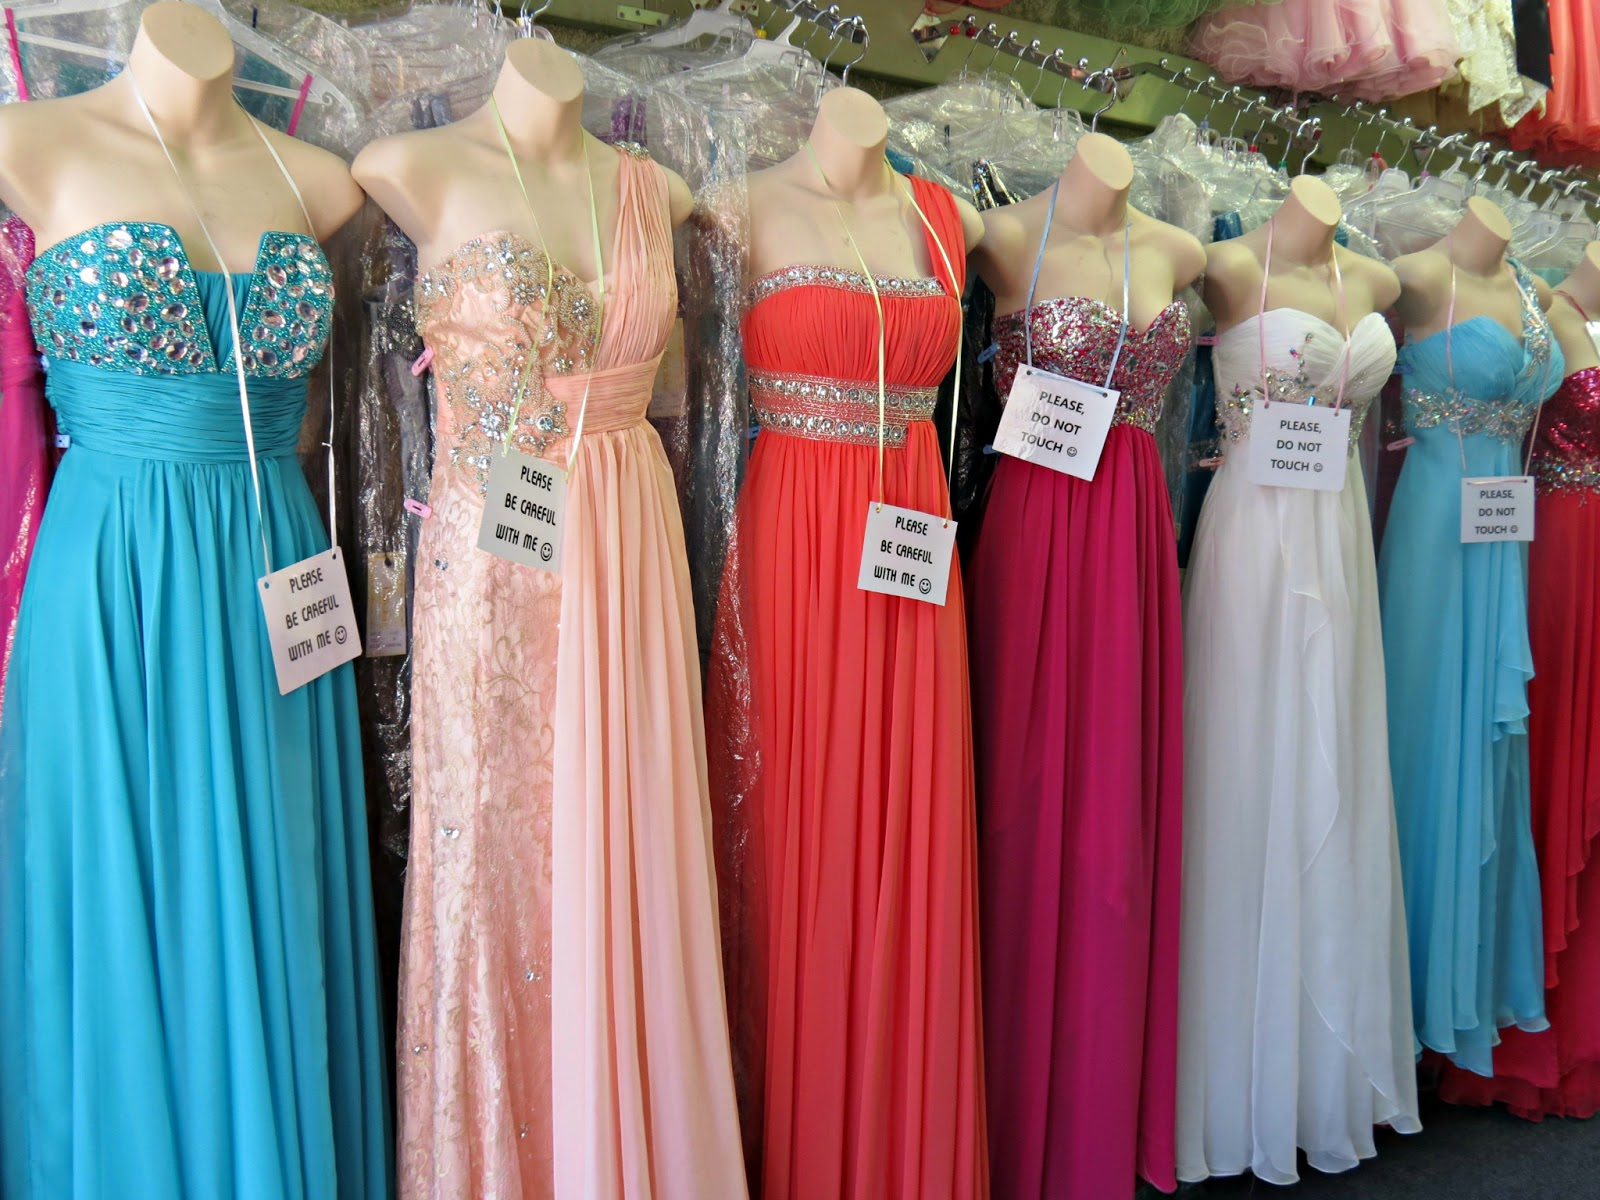 wedding dresses stores in downtown los angeles wedding dresses websites Wedding Dresses Stores In Downtown Los Angeles